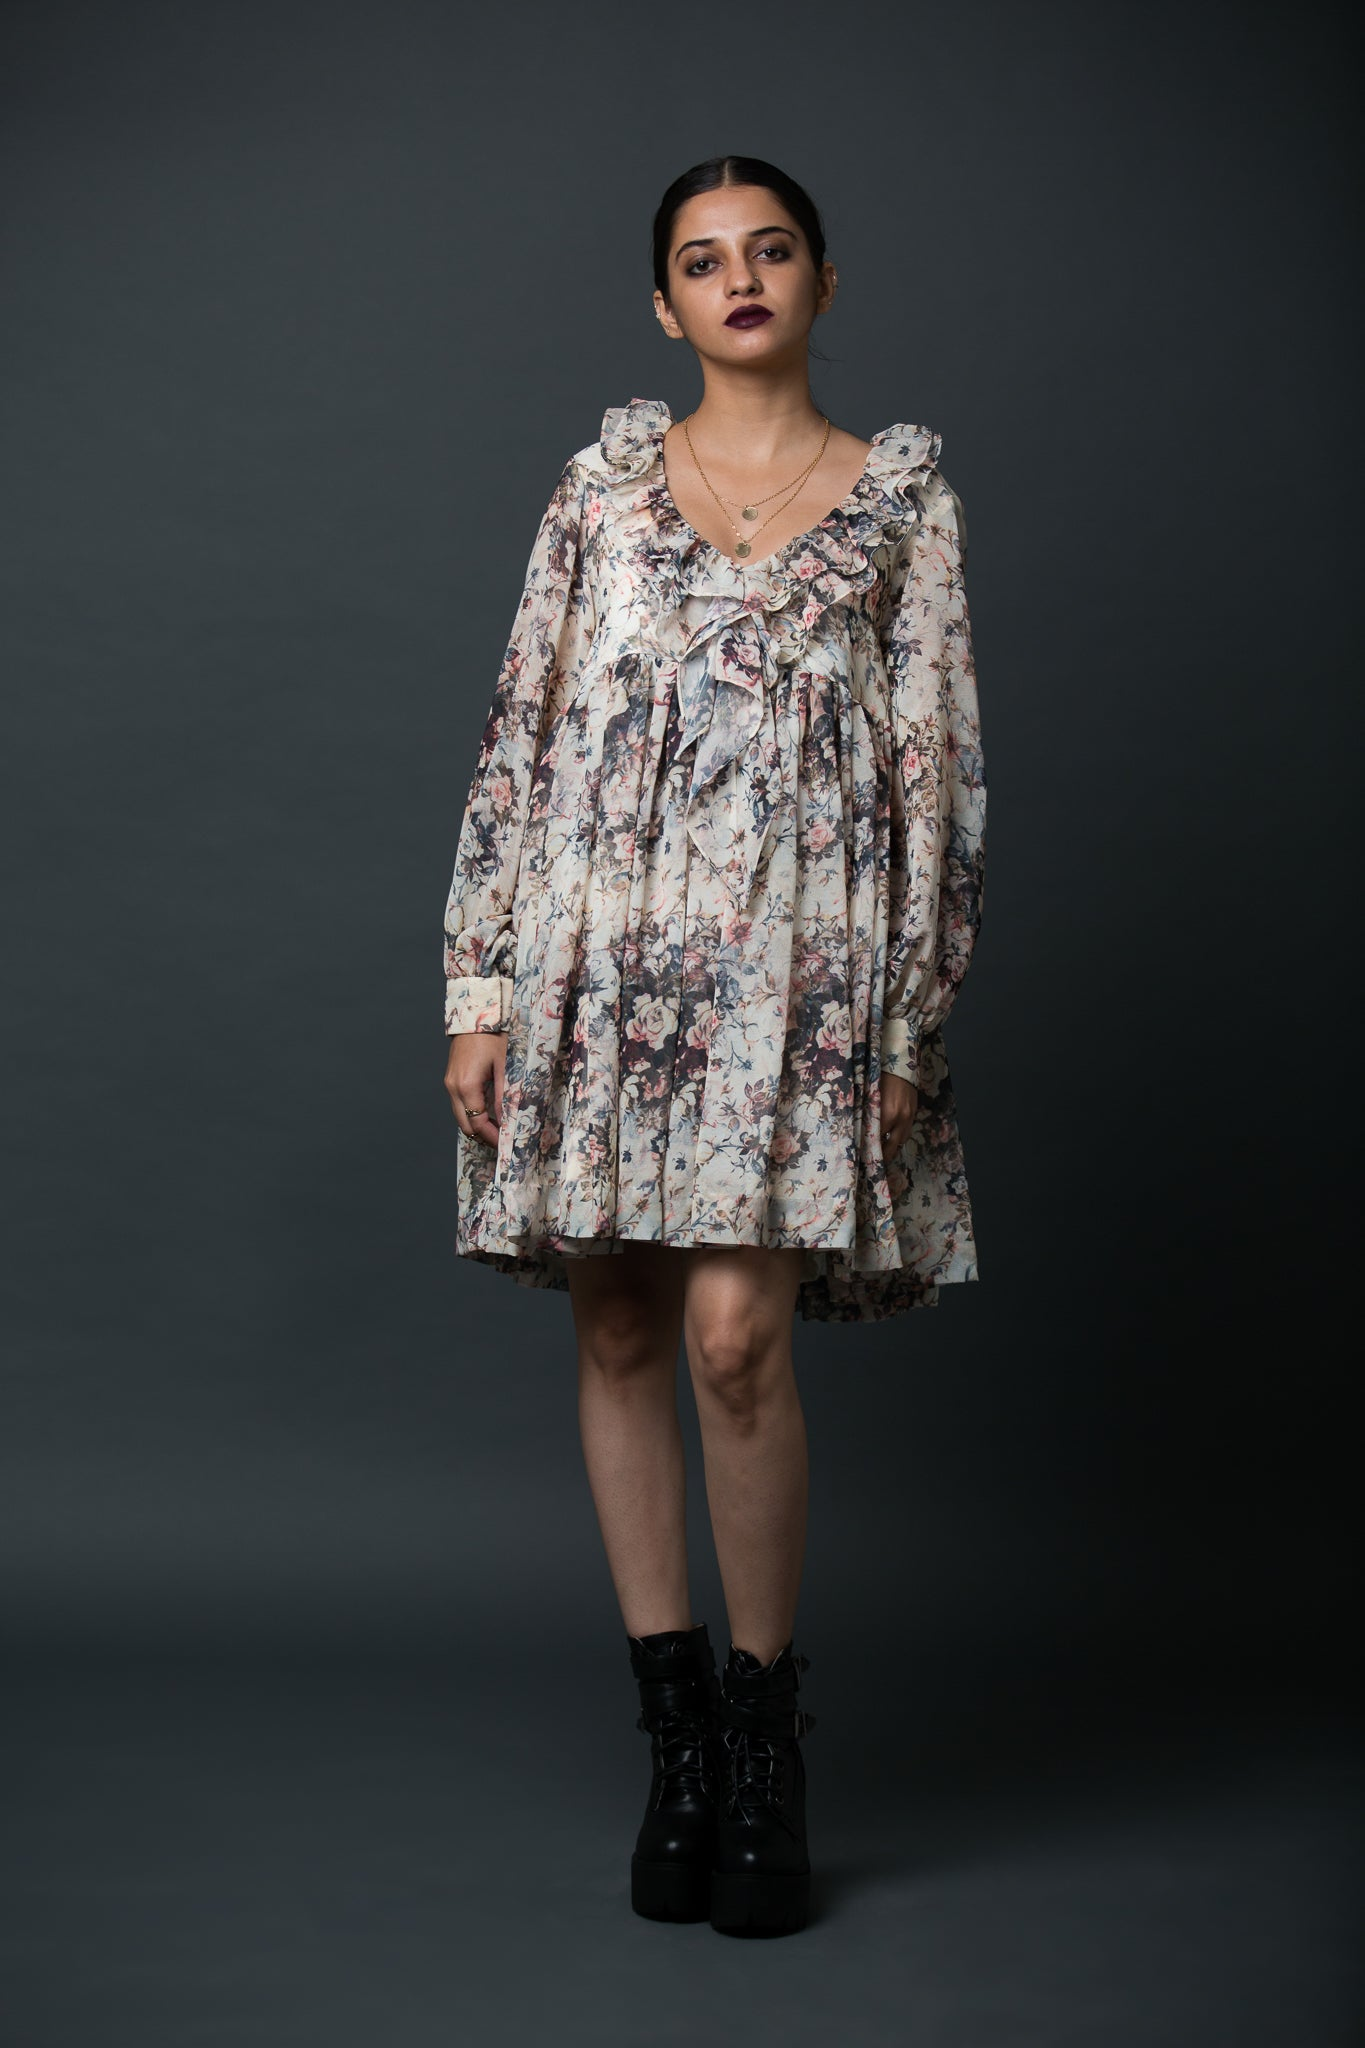 Levana - Vintage floral printed frill dress